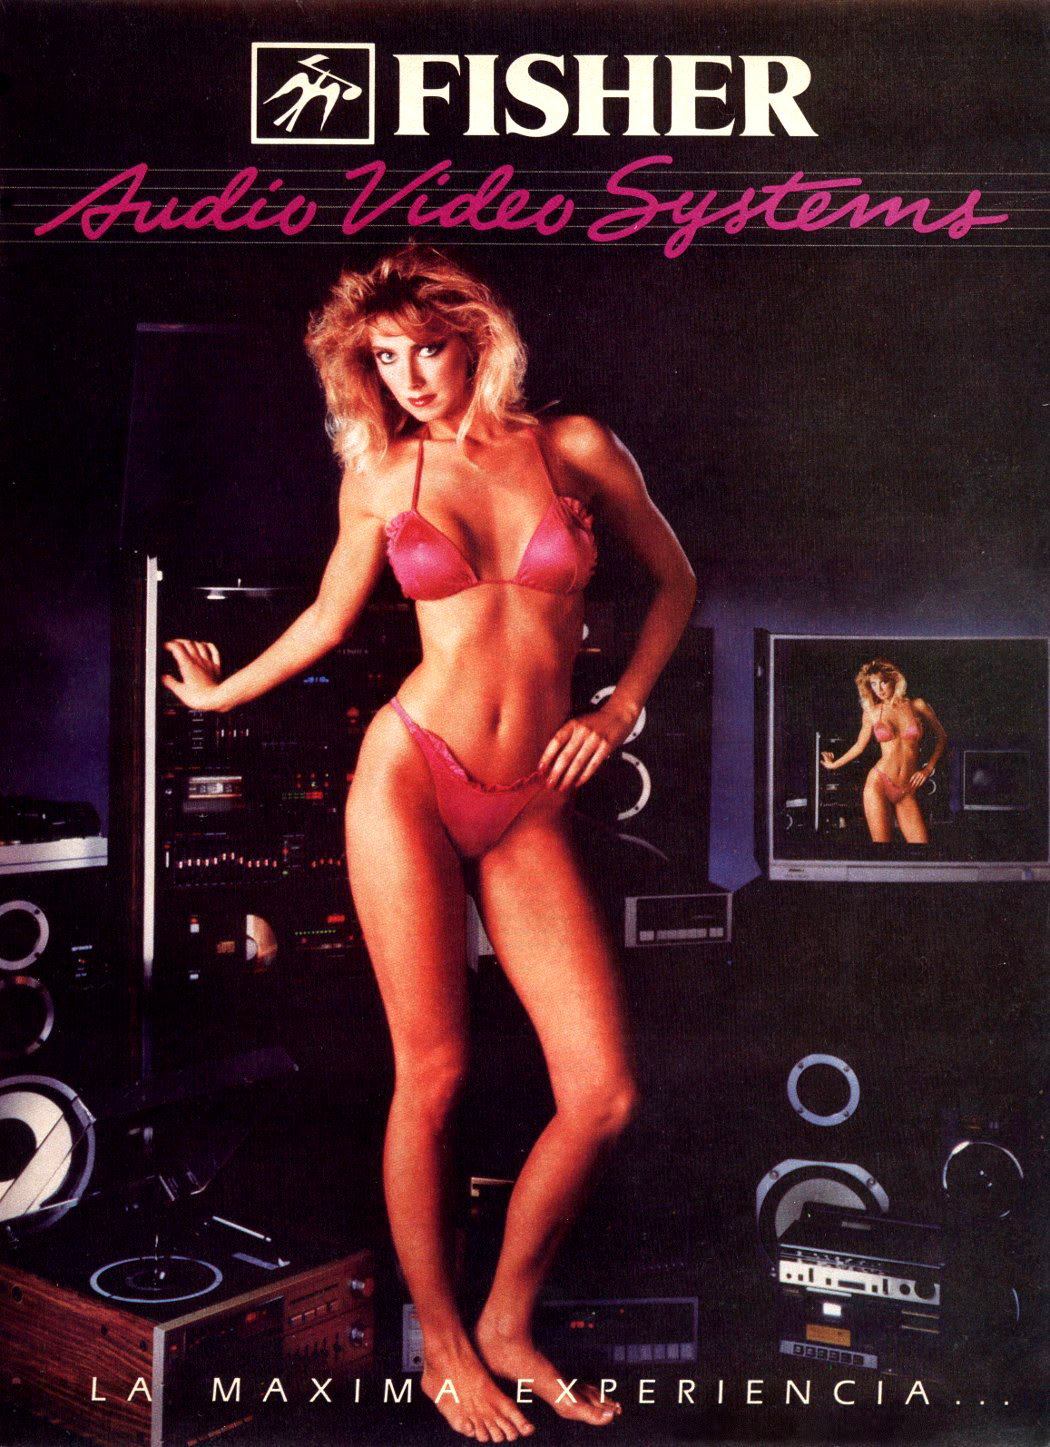 1980s-audio-video-systems